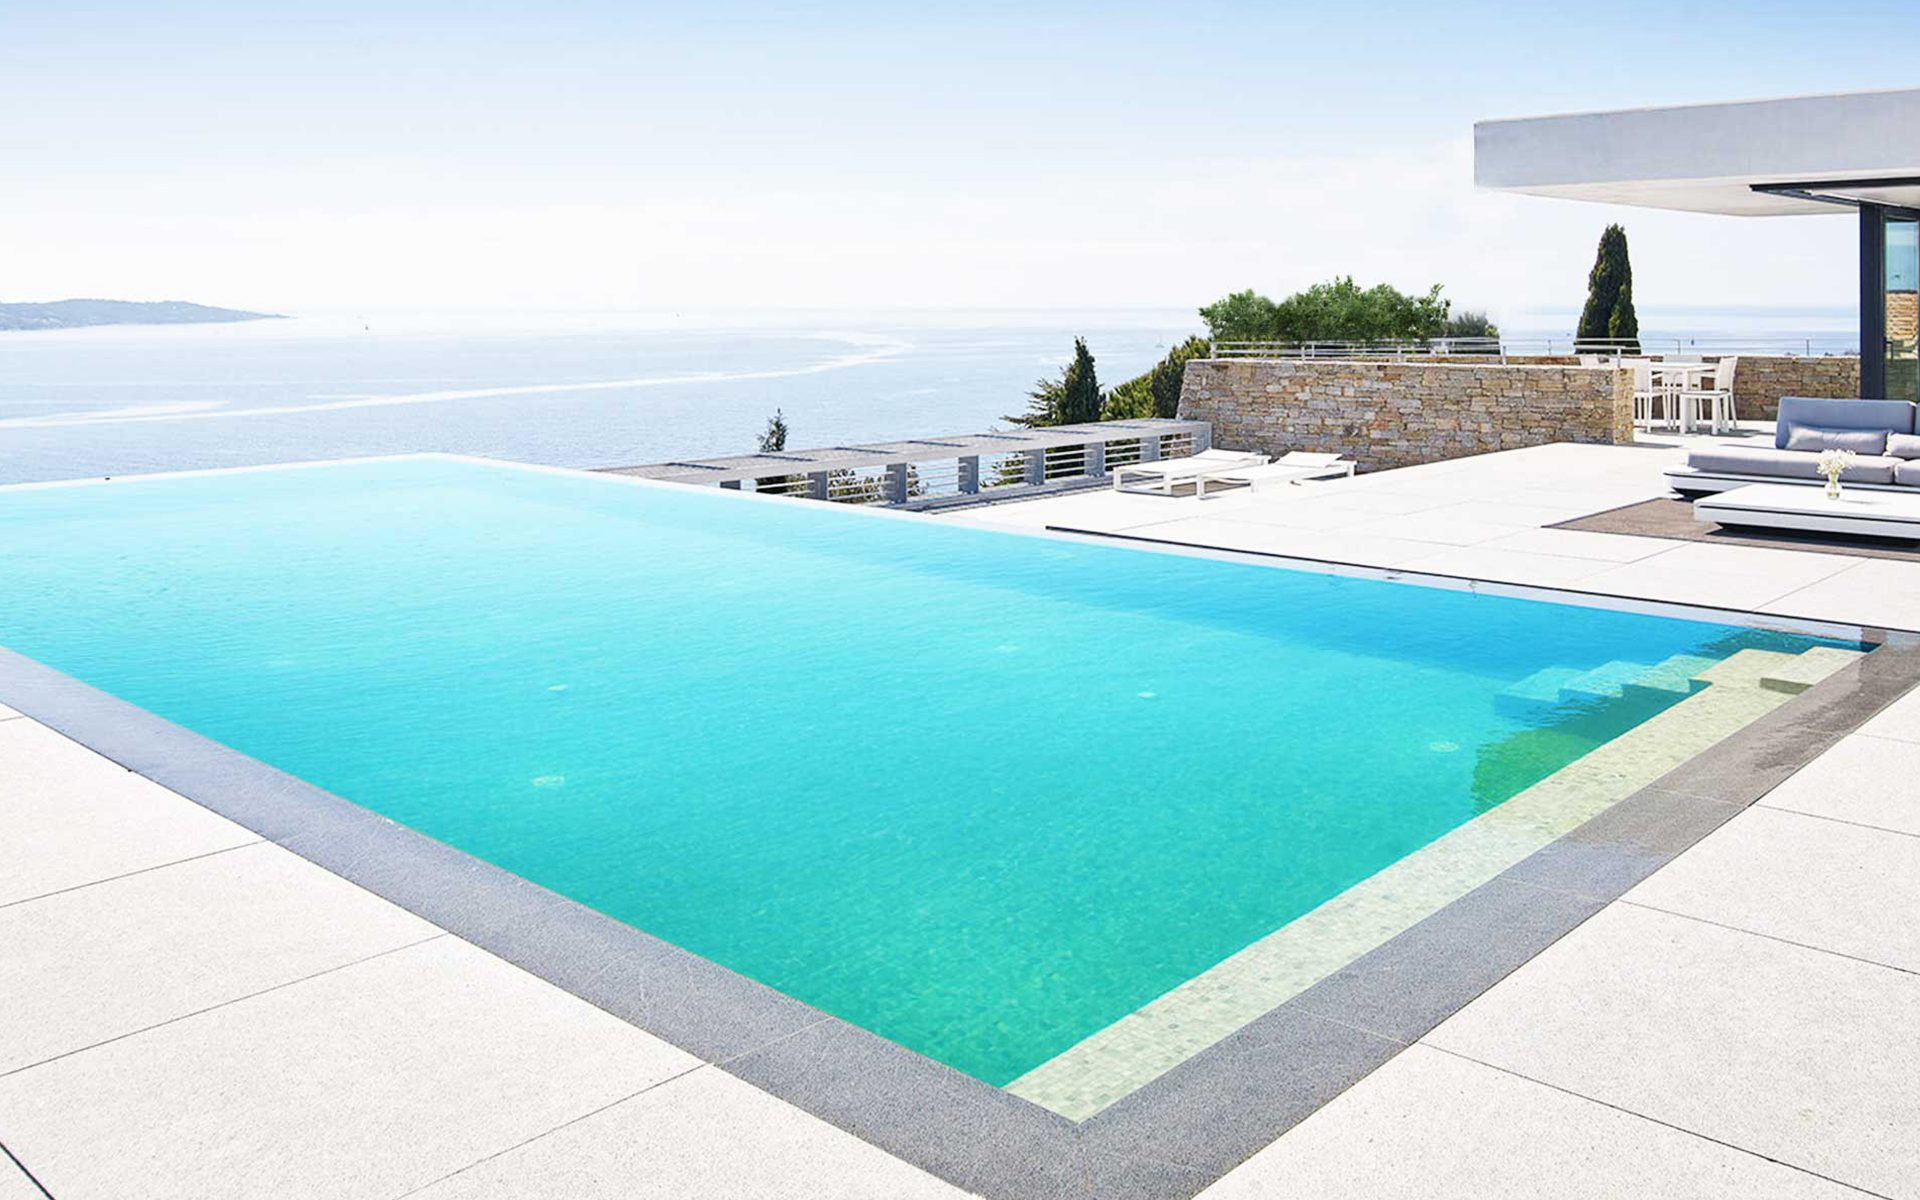 AZUR Toulon luxurious property infinity pool, on the cote d'Azur